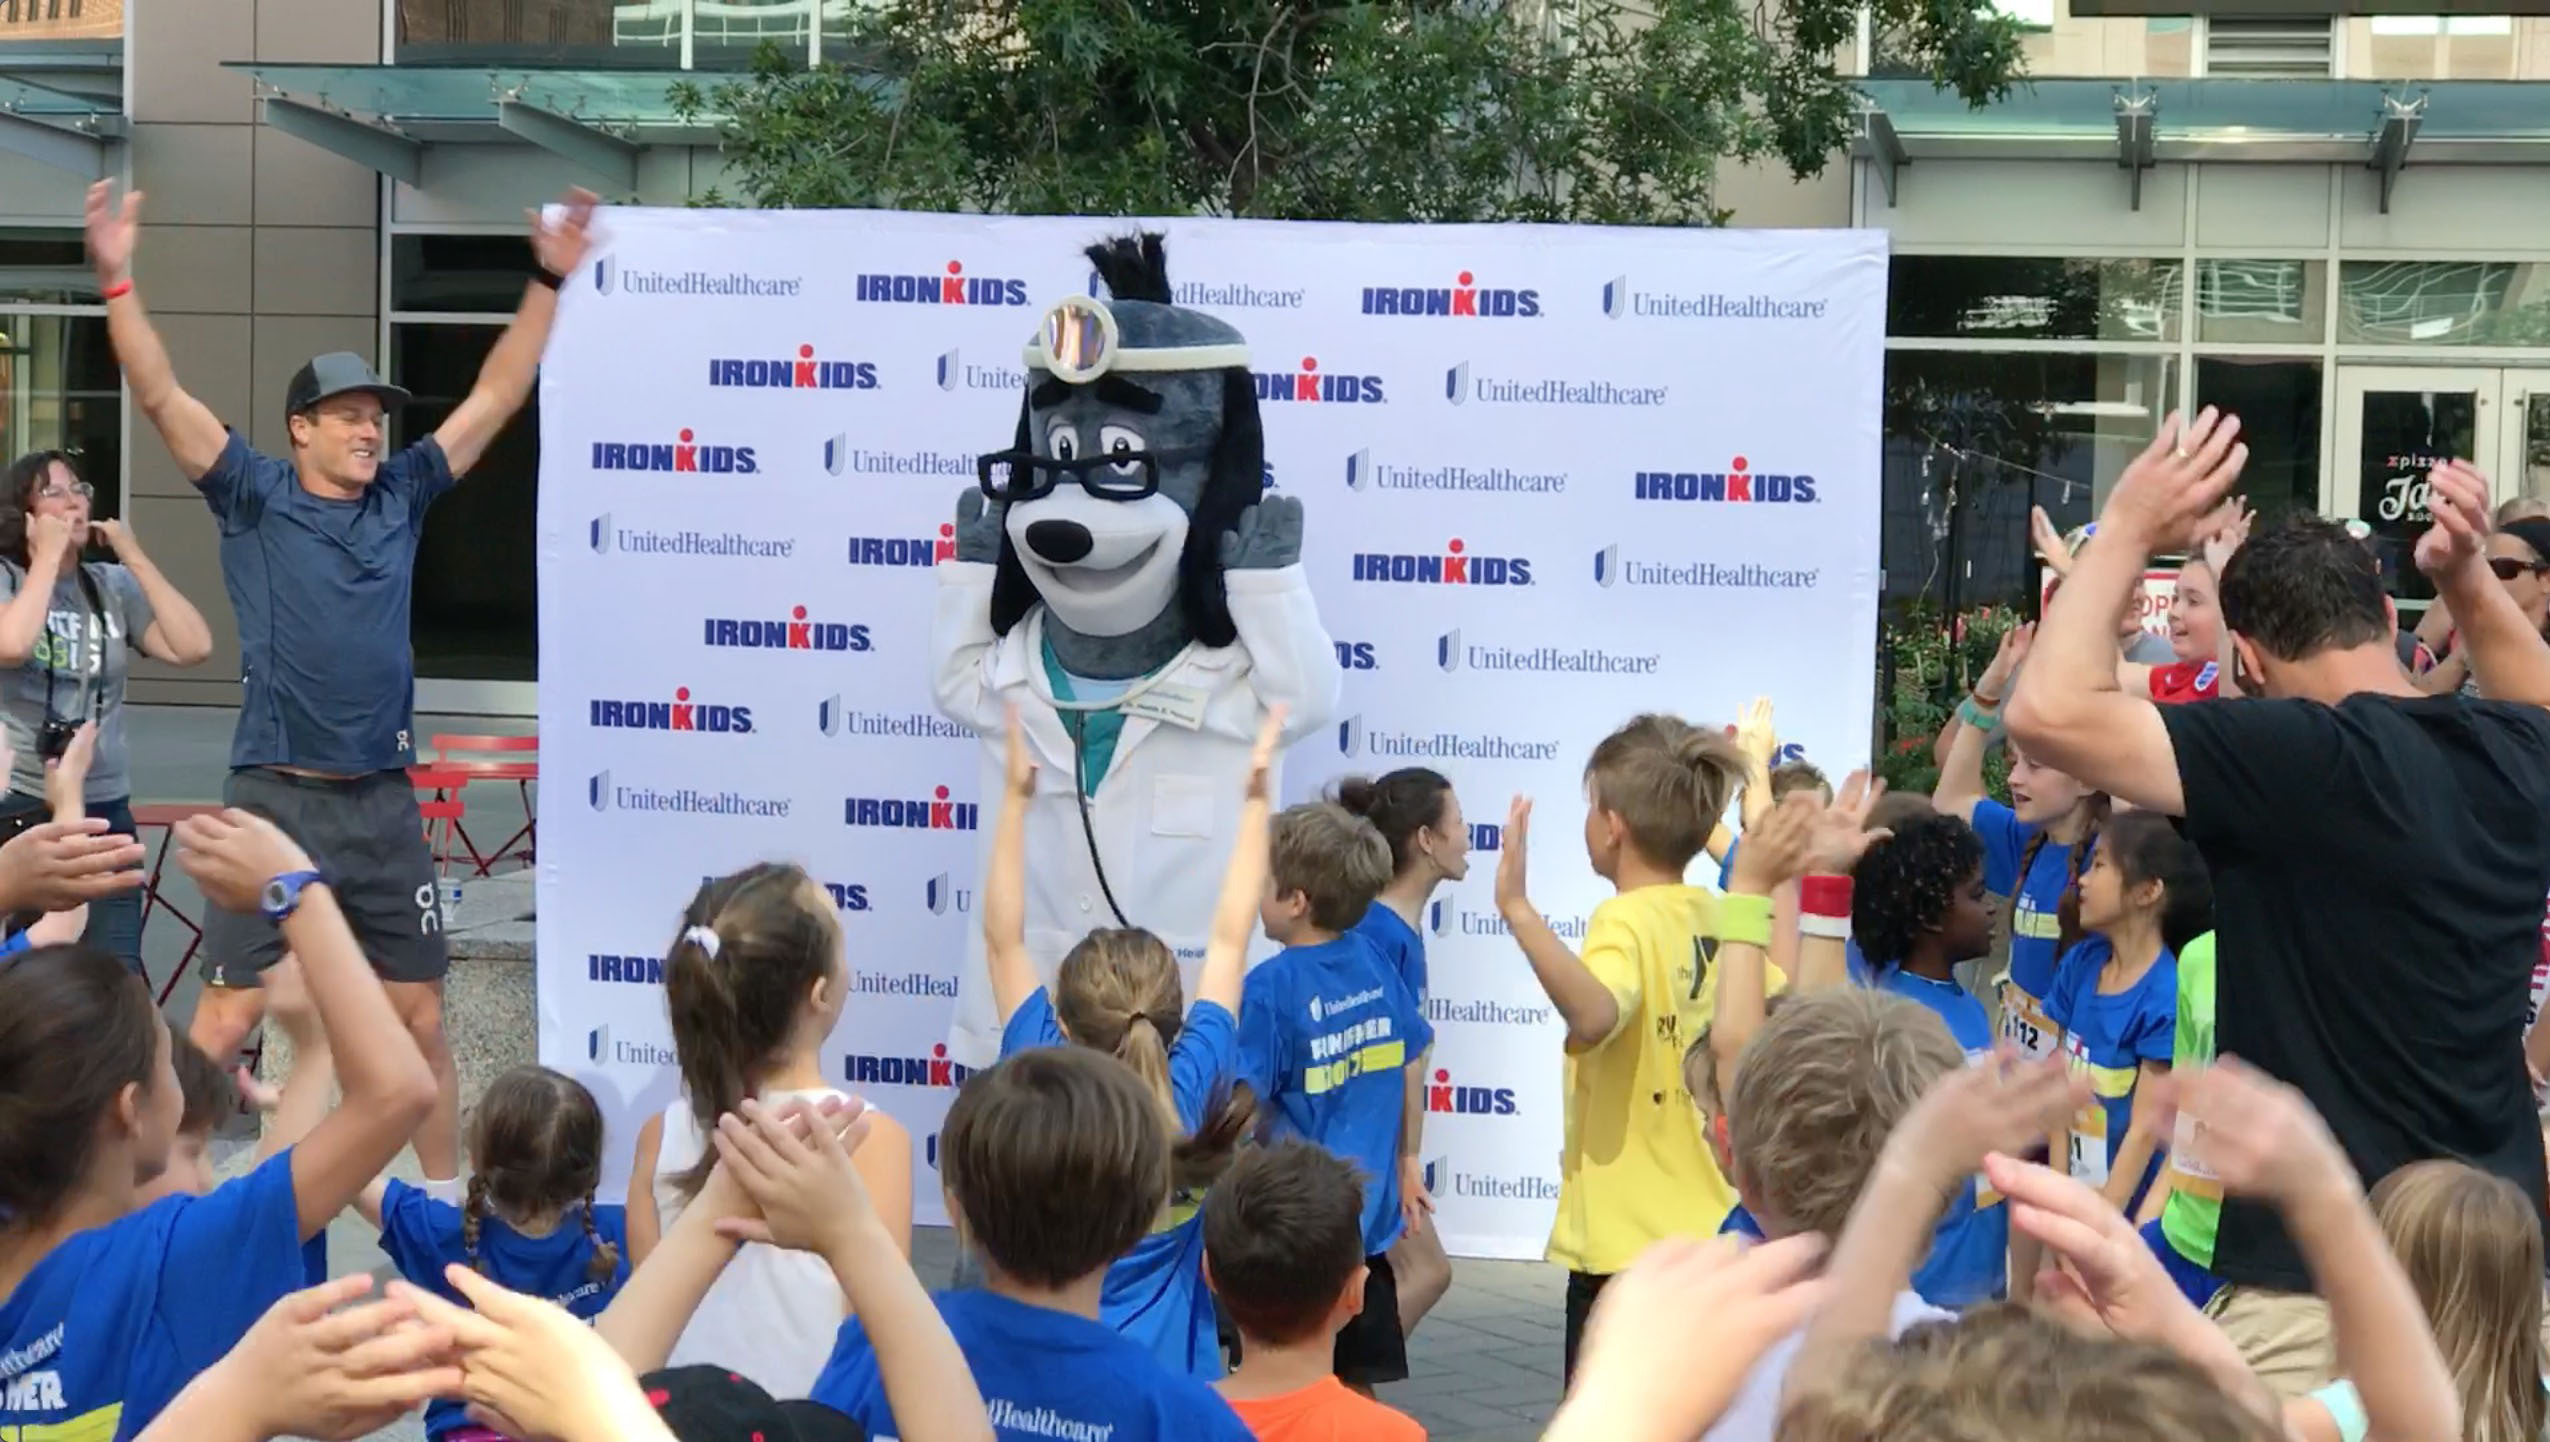 Leon Griffin, an IRONMAN pro-athlete from Australia, and UnitedHealthcare mascot Dr. Health E. Hound led warm-ups prior to today's UnitedHealthcare IRONKIDS Raleigh Fun Run at Raleigh Marriott City Center. Derek K. Harris Jr. of UnitedHealthcare and state Rep. Duane Hall gave medals to more than 160 kids as they crossed the finish line. (Photo credit: Marc Kawanishi)